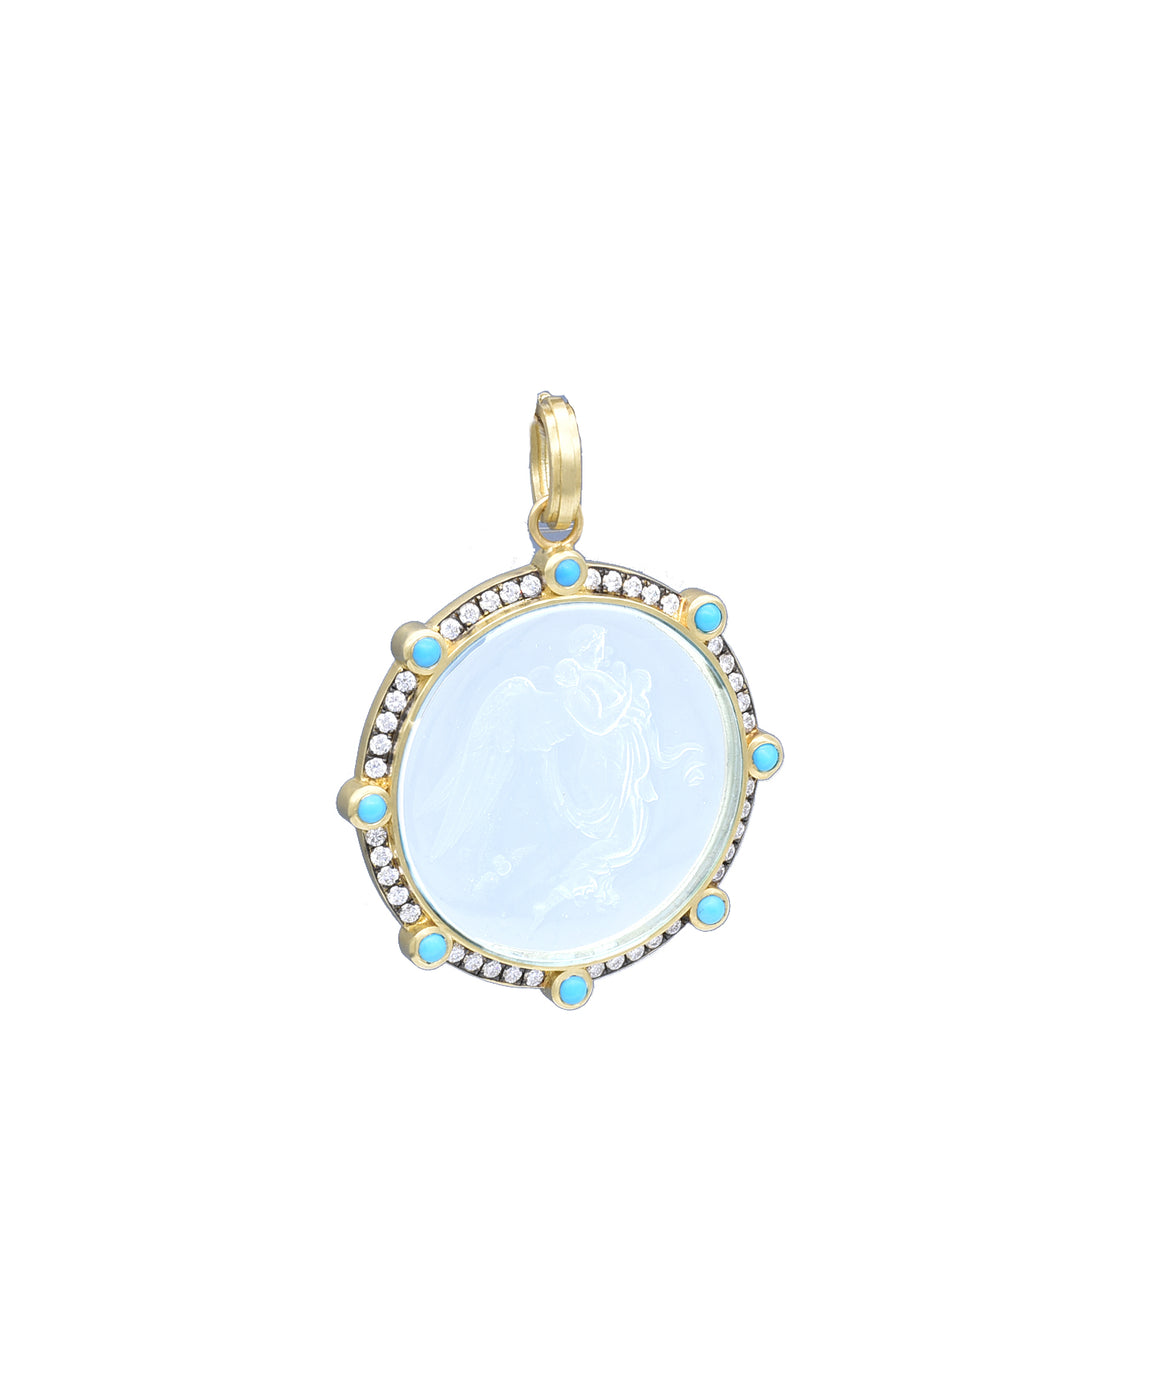 Antique crystal intaglio in turquoise bezel - Lesley Ann Jewels